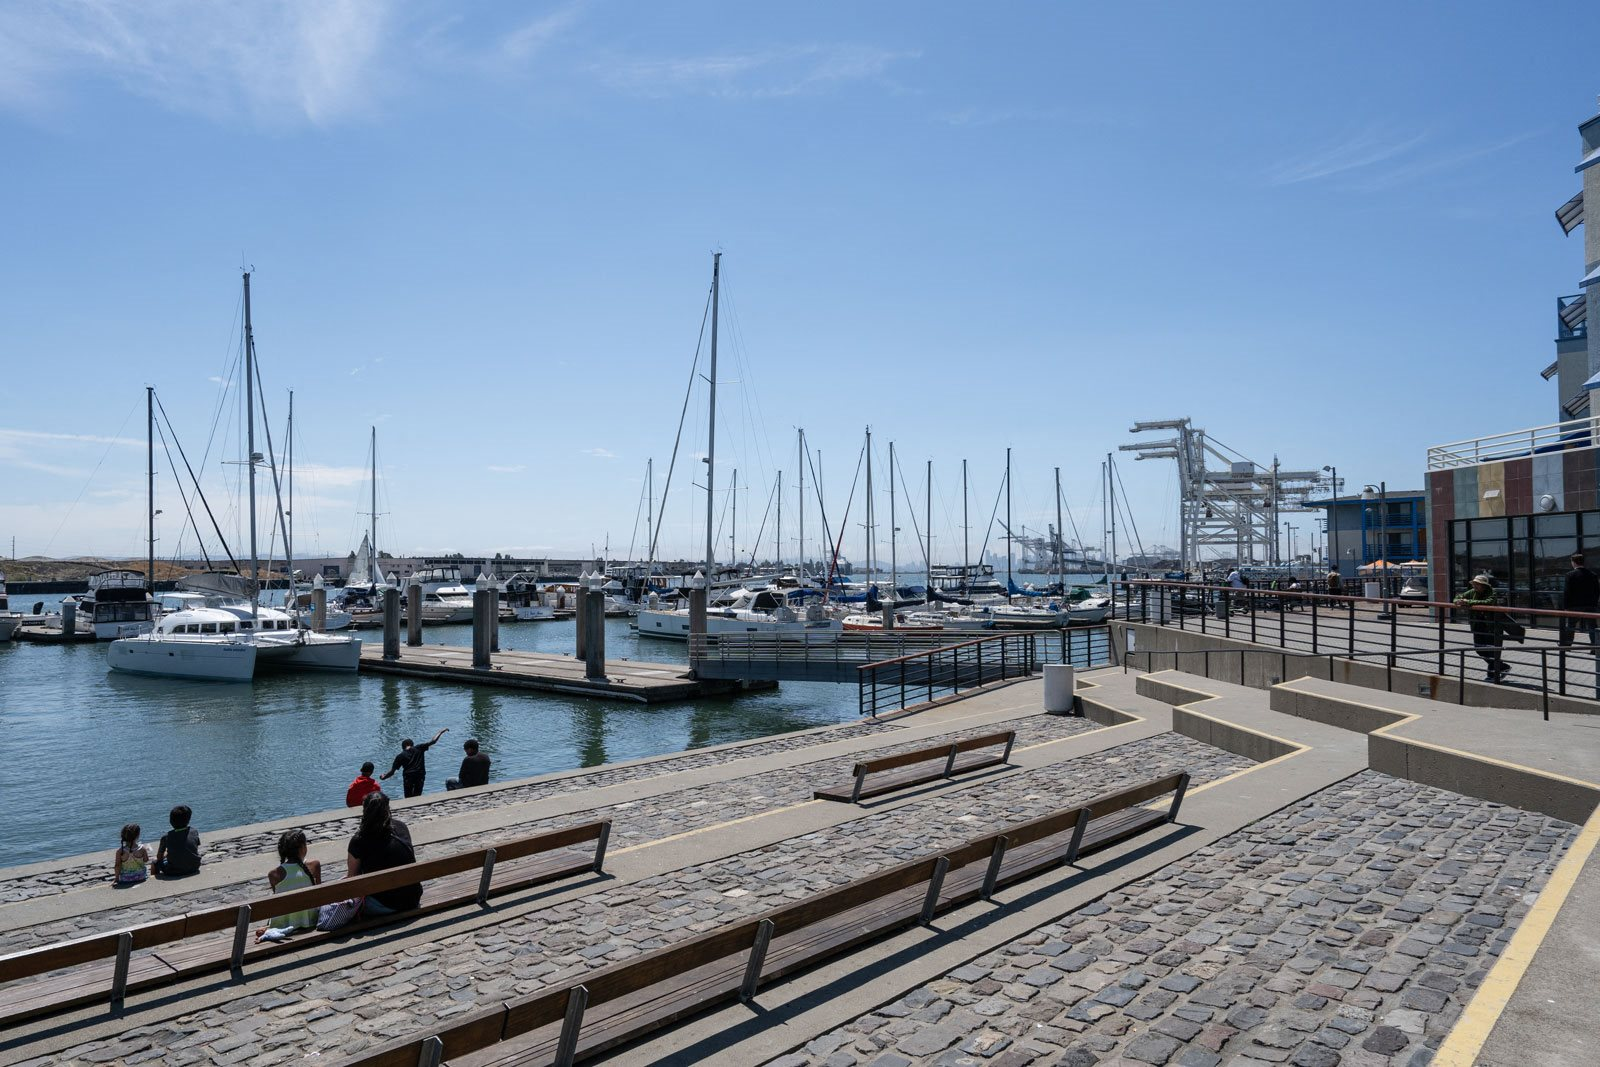 Waterfront Views near Allegro Jack London Square, 240 3rd Street, CA